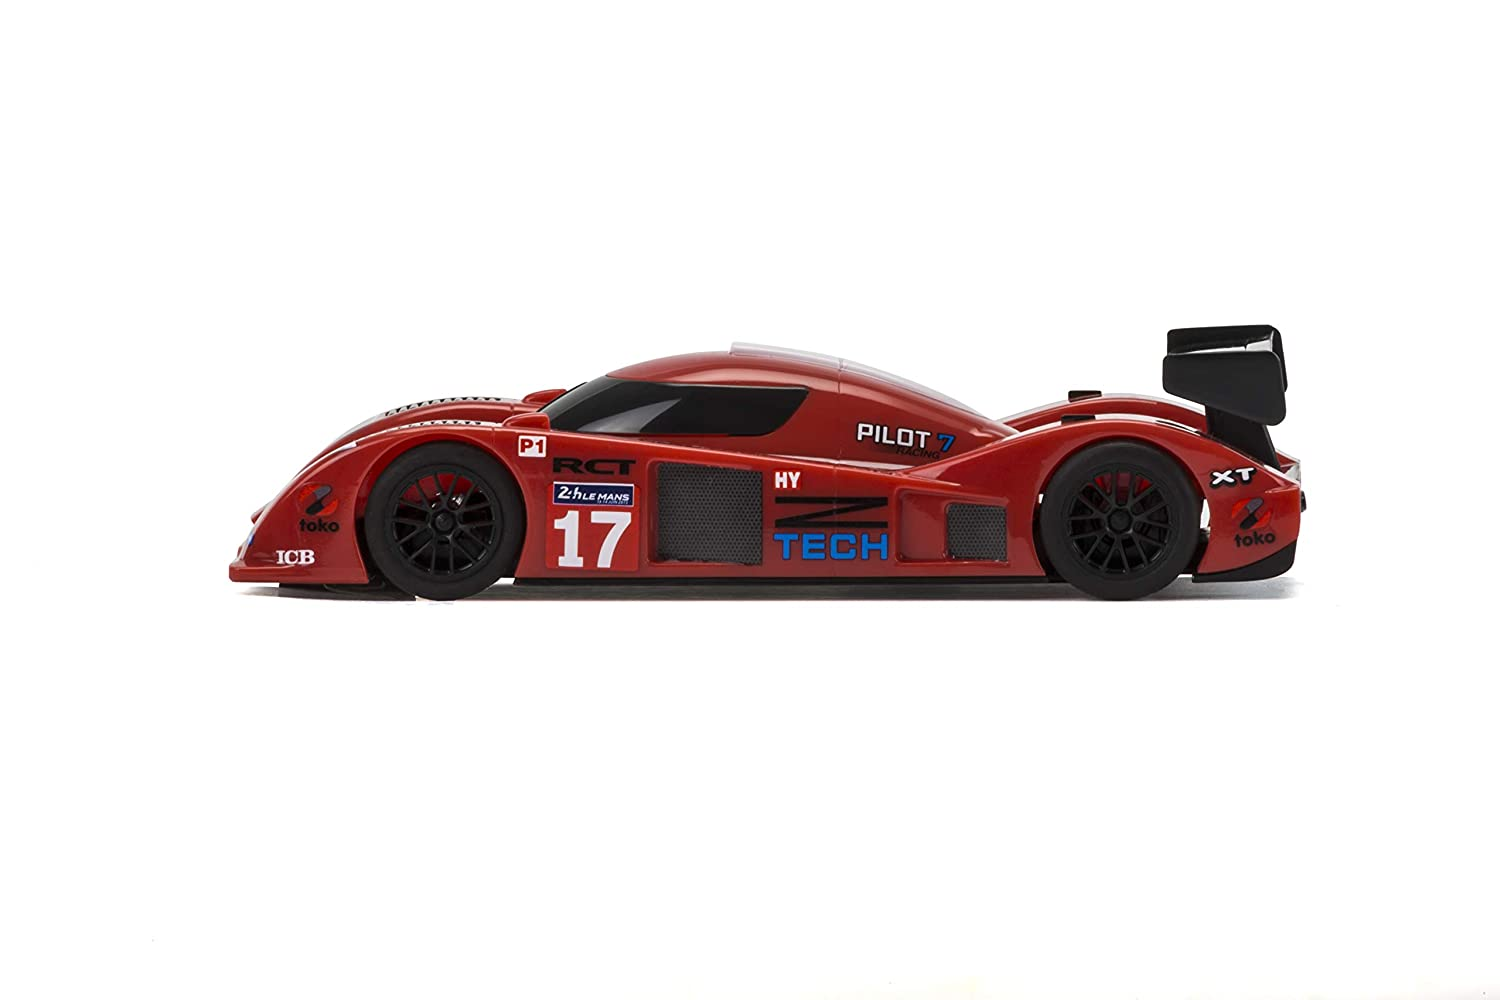 Scalextric Le Mans 24hr 132 Slot Car Race Track C1368t Advanced Wiring Toys Games